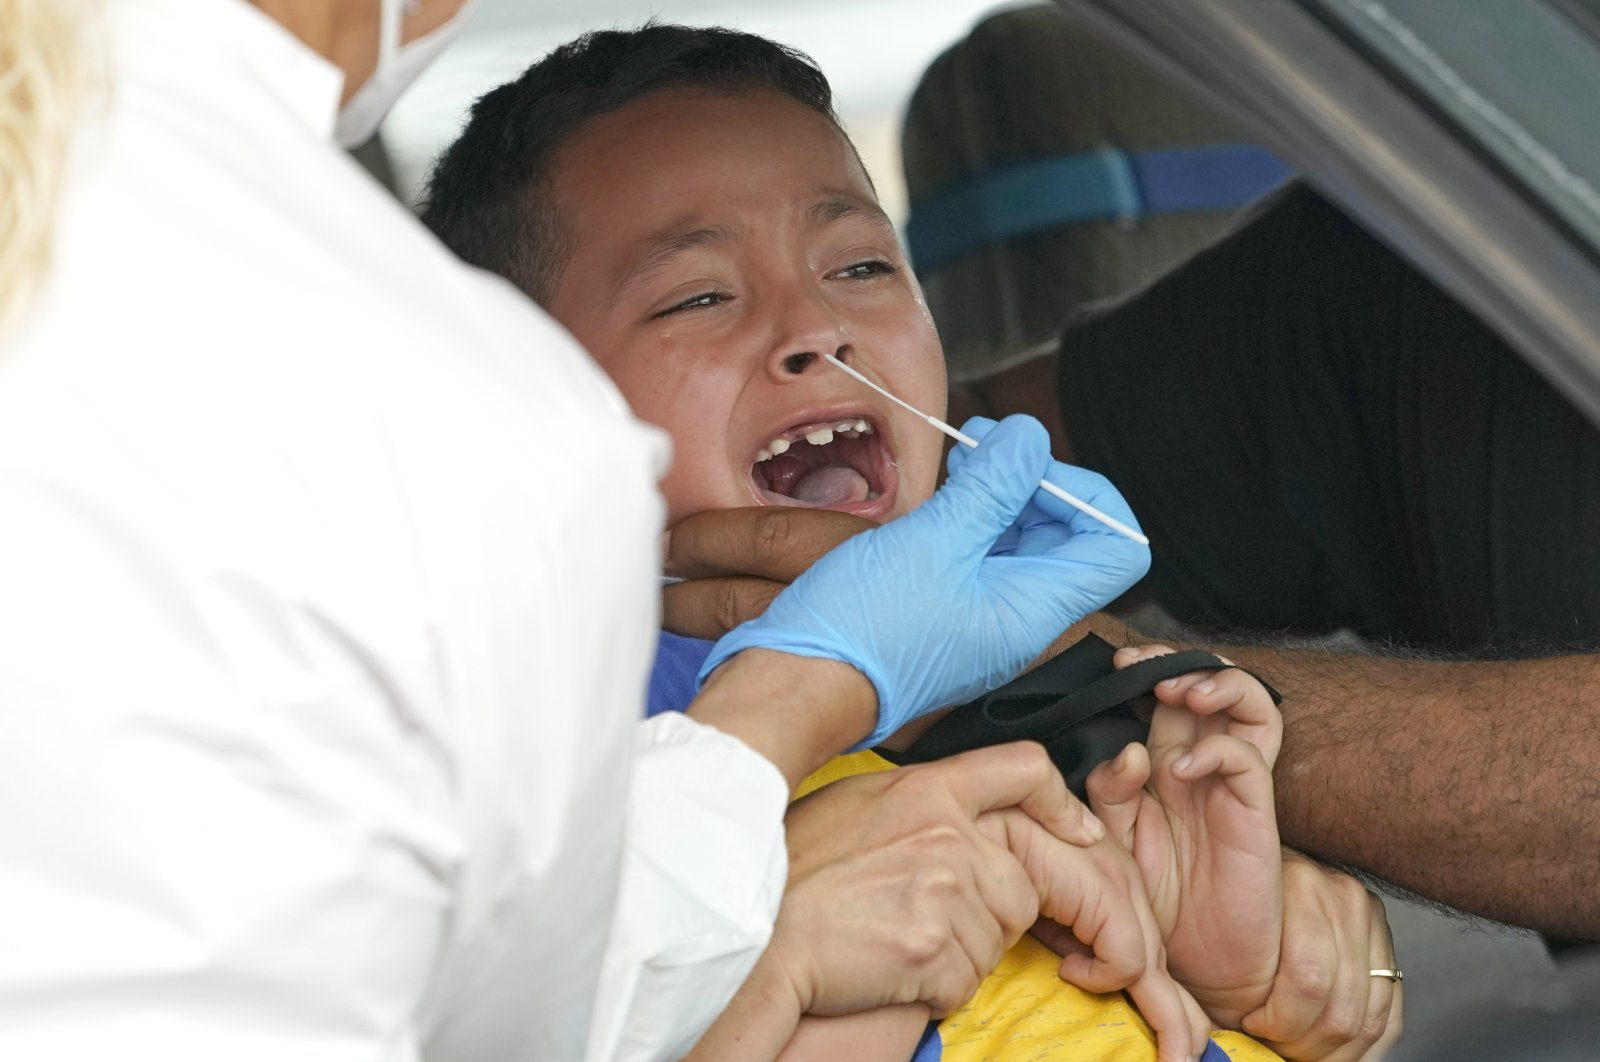 A health care professional takes a sample from Daniel Palacios, 7, at a United Memorial Medical Center COVID-19 testing site in Houston, Texas on June 26, 2020. (AP Photo)